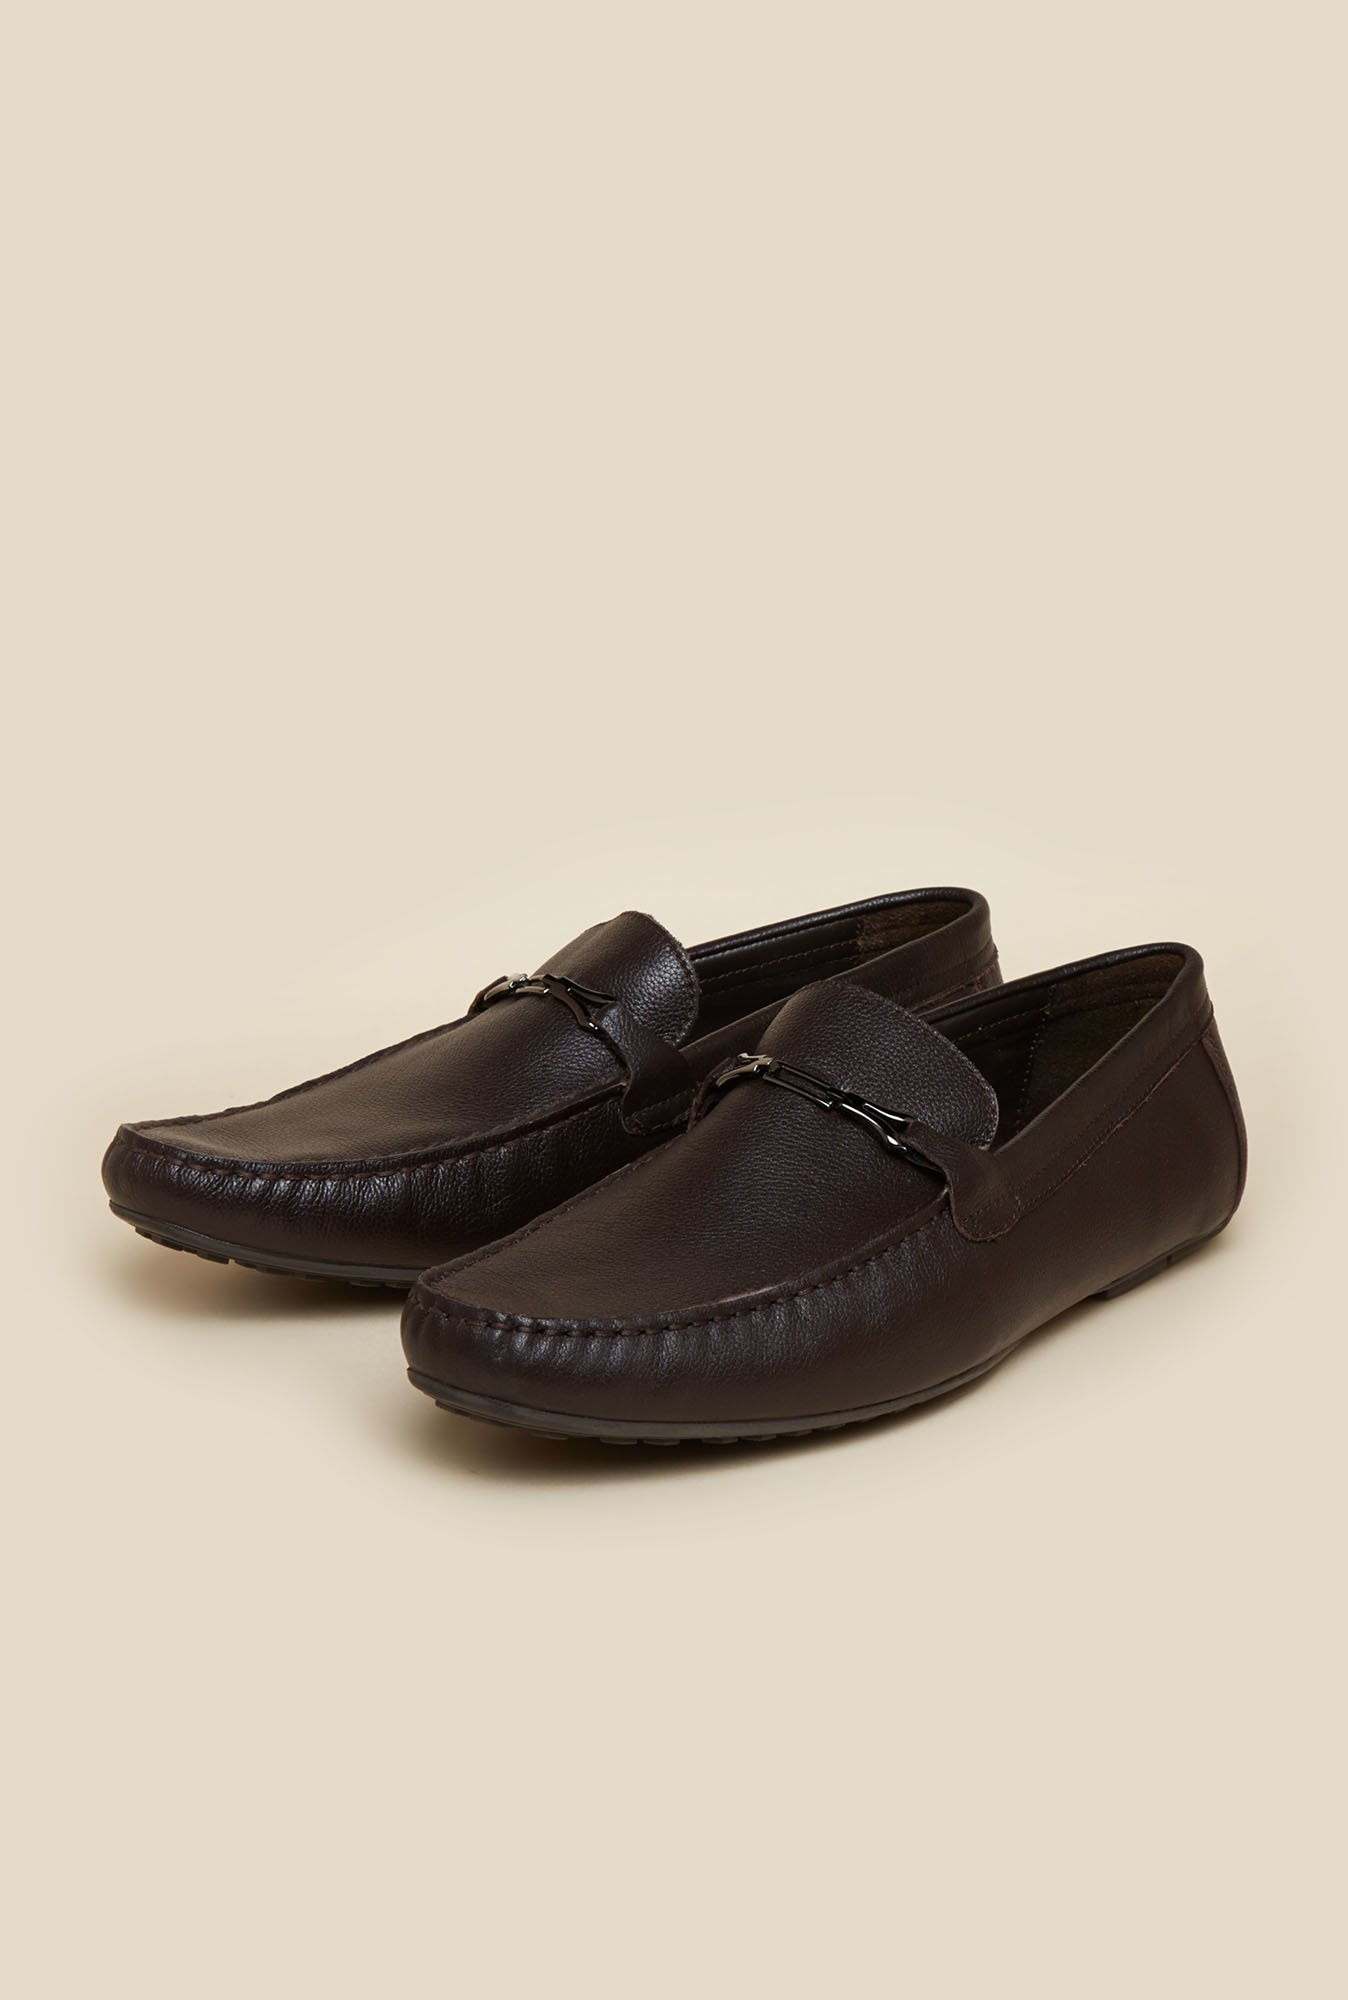 J. Fontini by Mochi Espresso Leather Formal Shoes